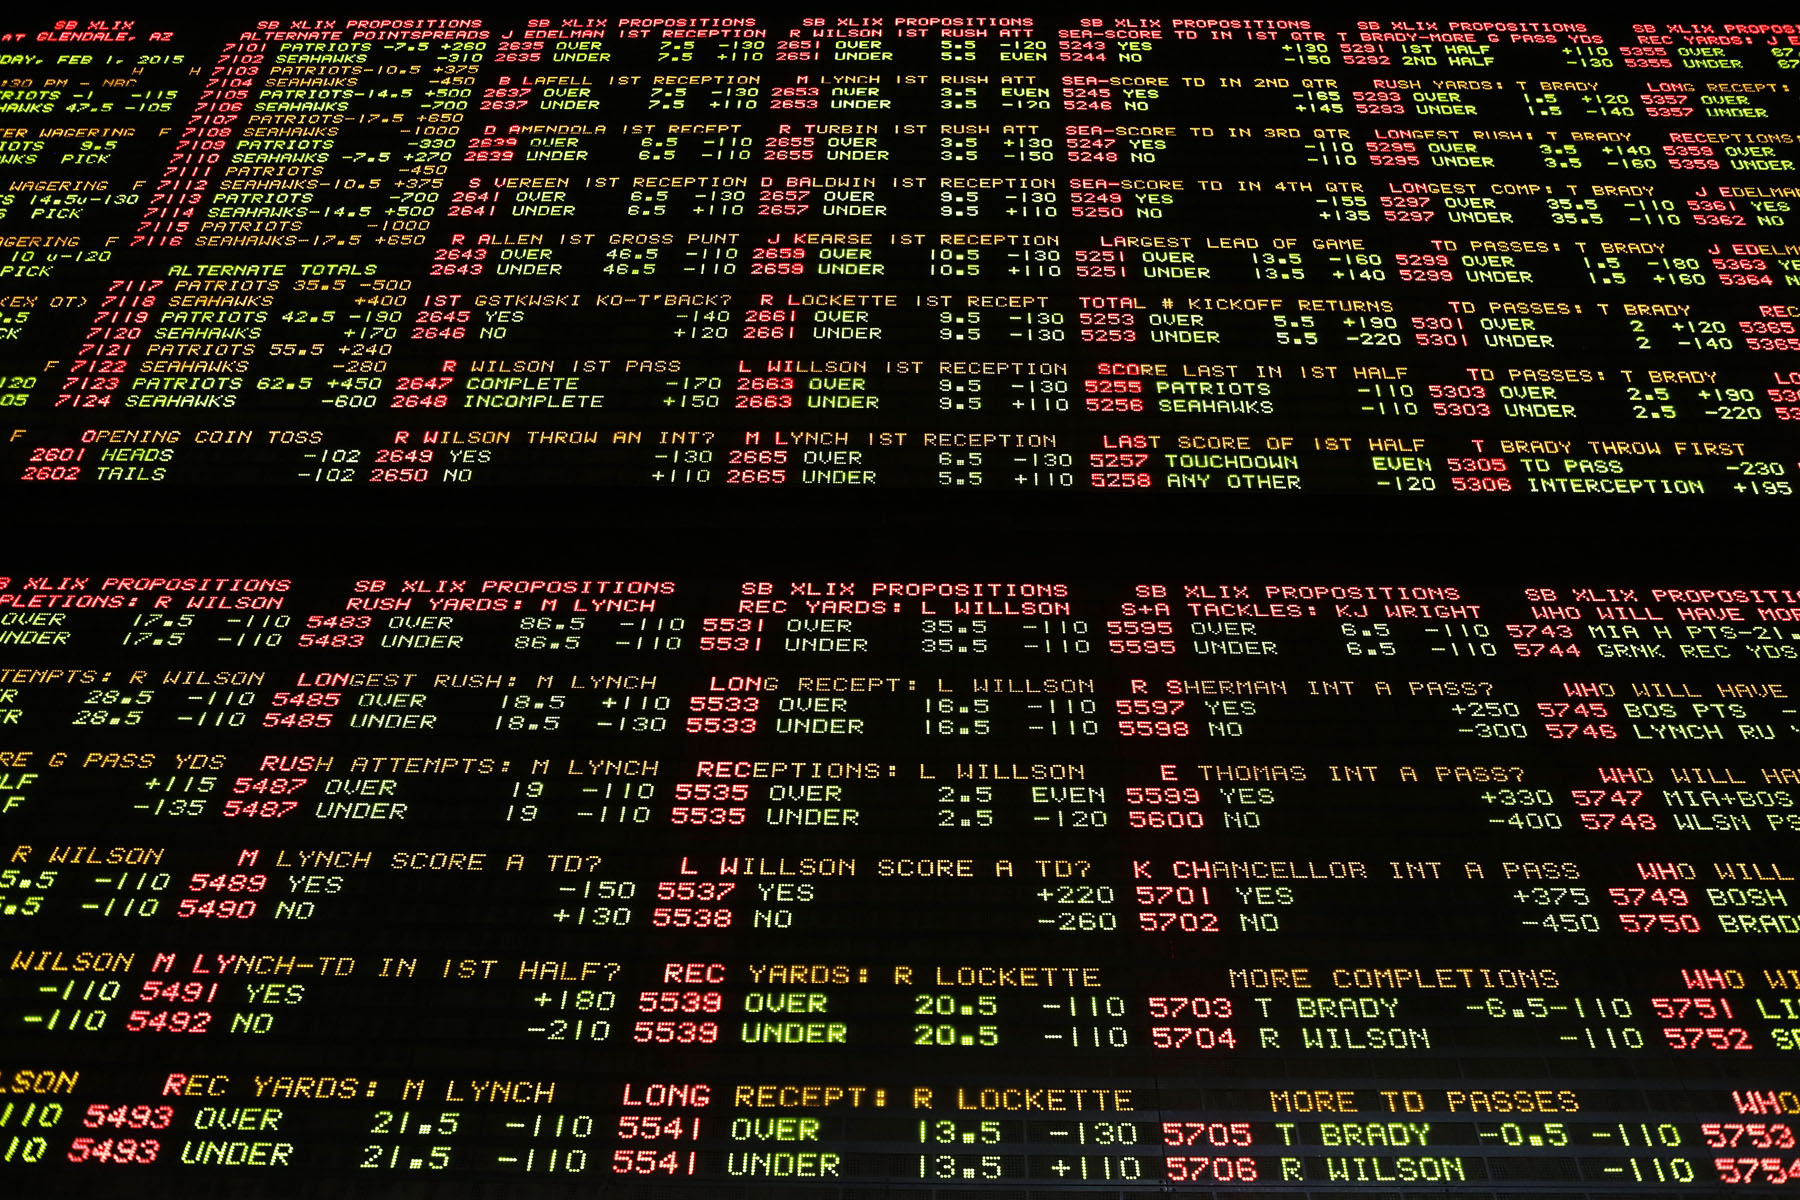 Super Bowl proposition bets are displayed on a board at the Westgate Superbook race and sports book Tuesday, Jan. 27, 2015, in Las Vegas. (AP Photo/John Locher)